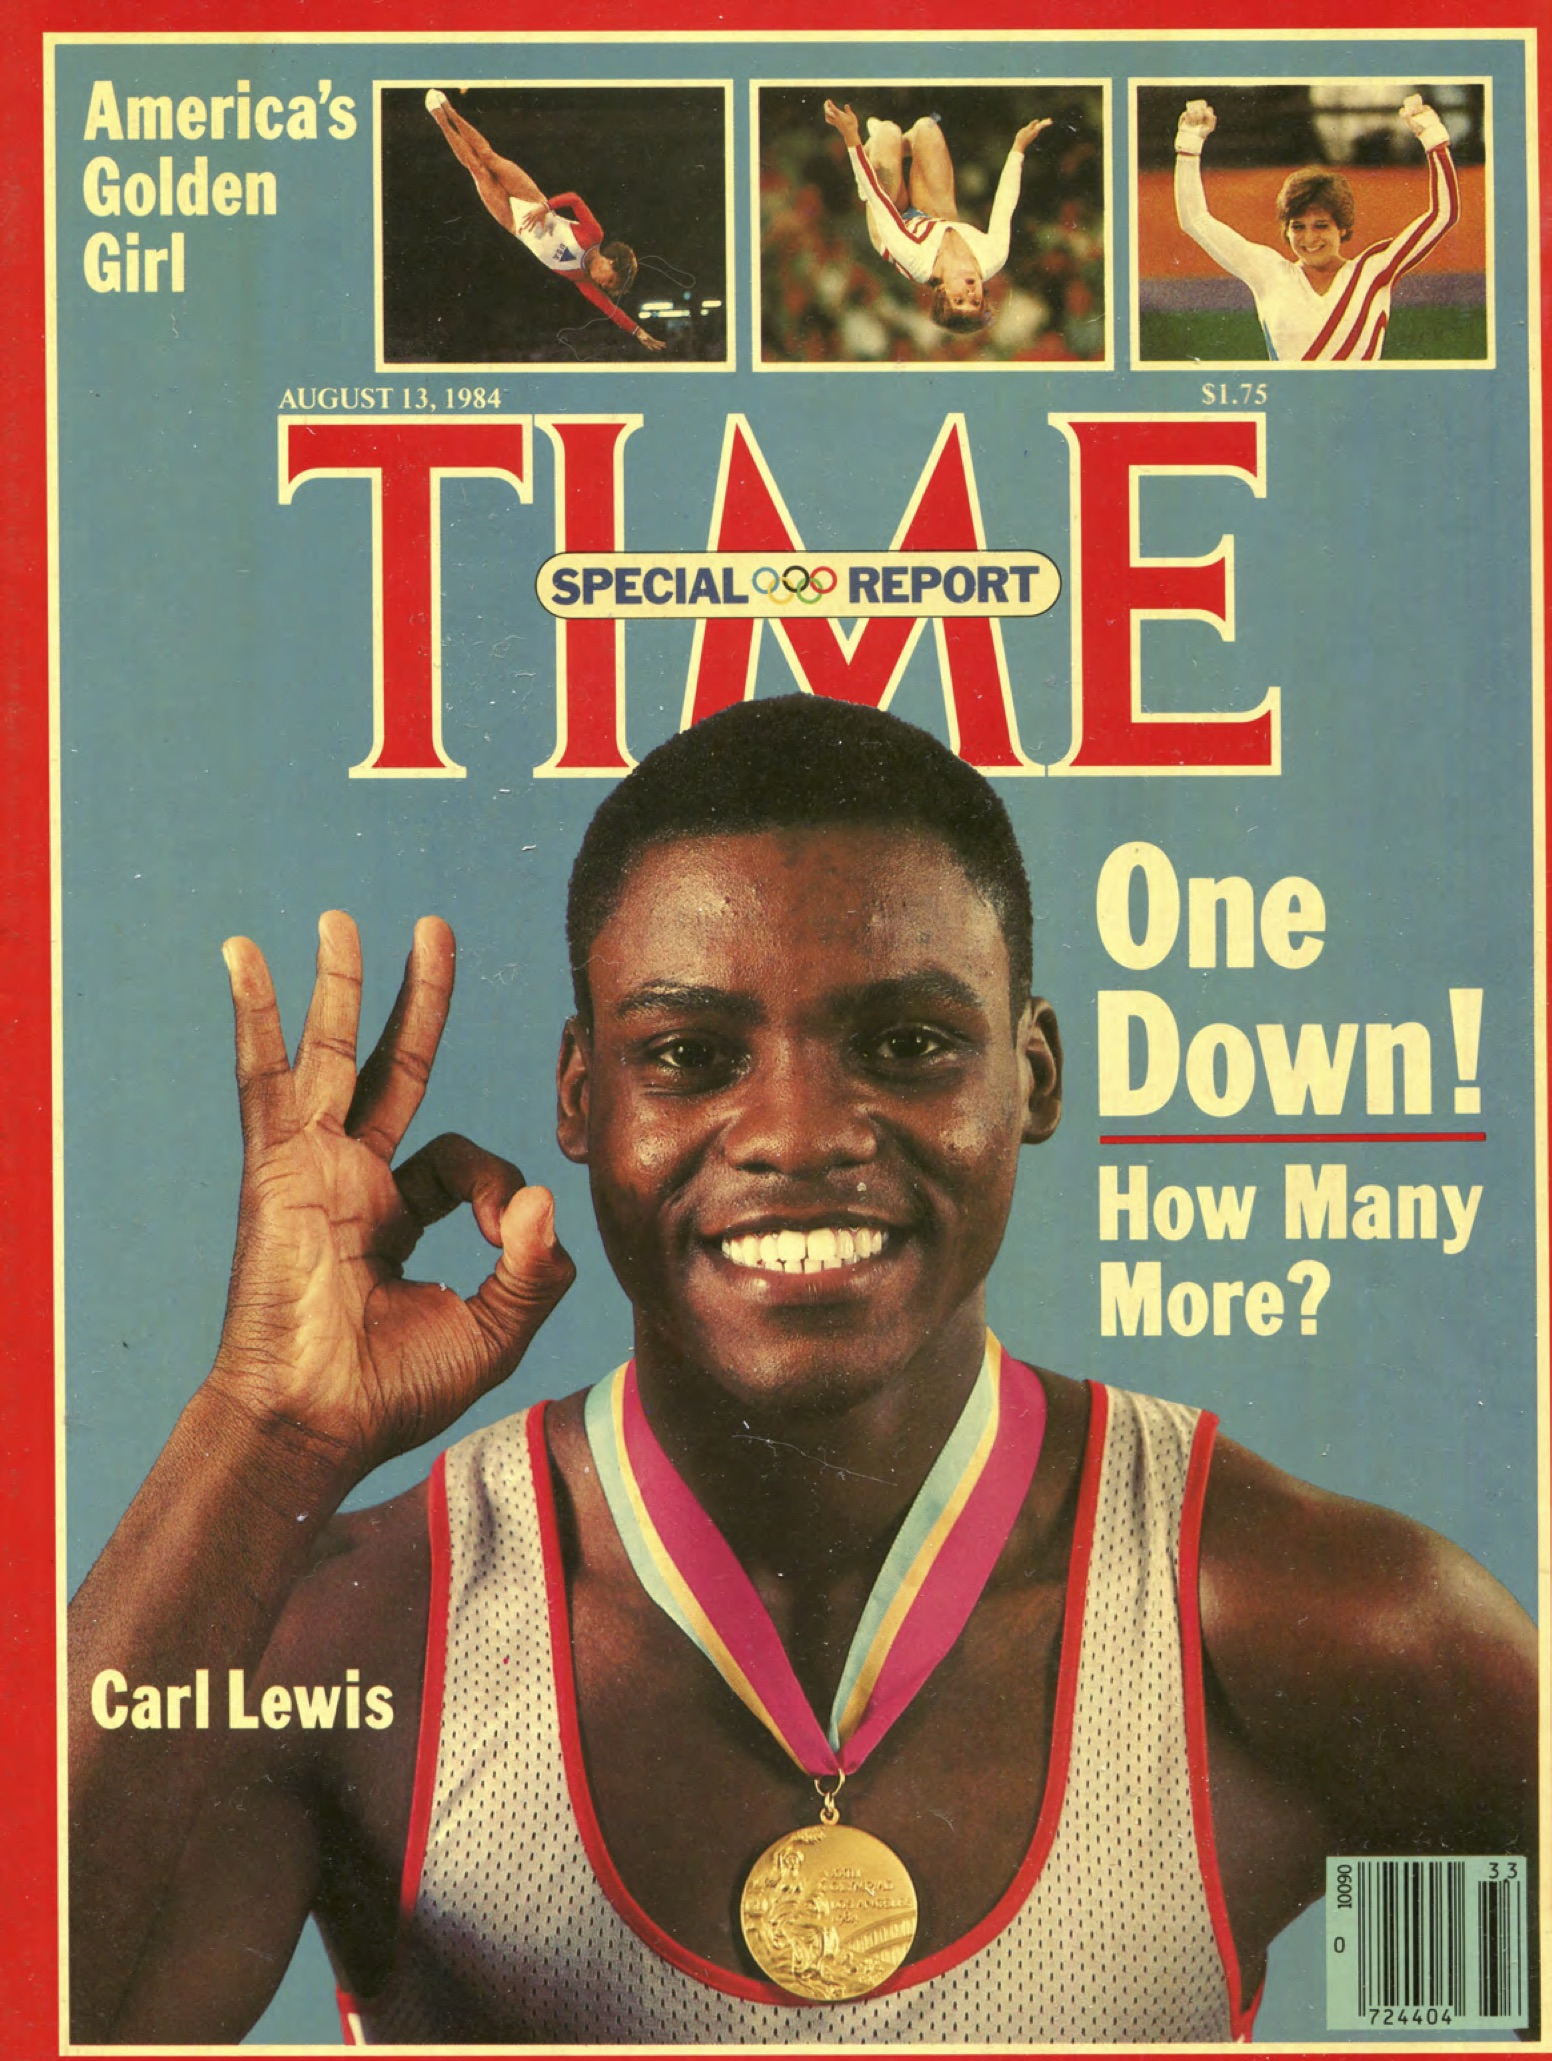 Carl Lewis Cover Time Summer Olympics 1984 cover.jpg